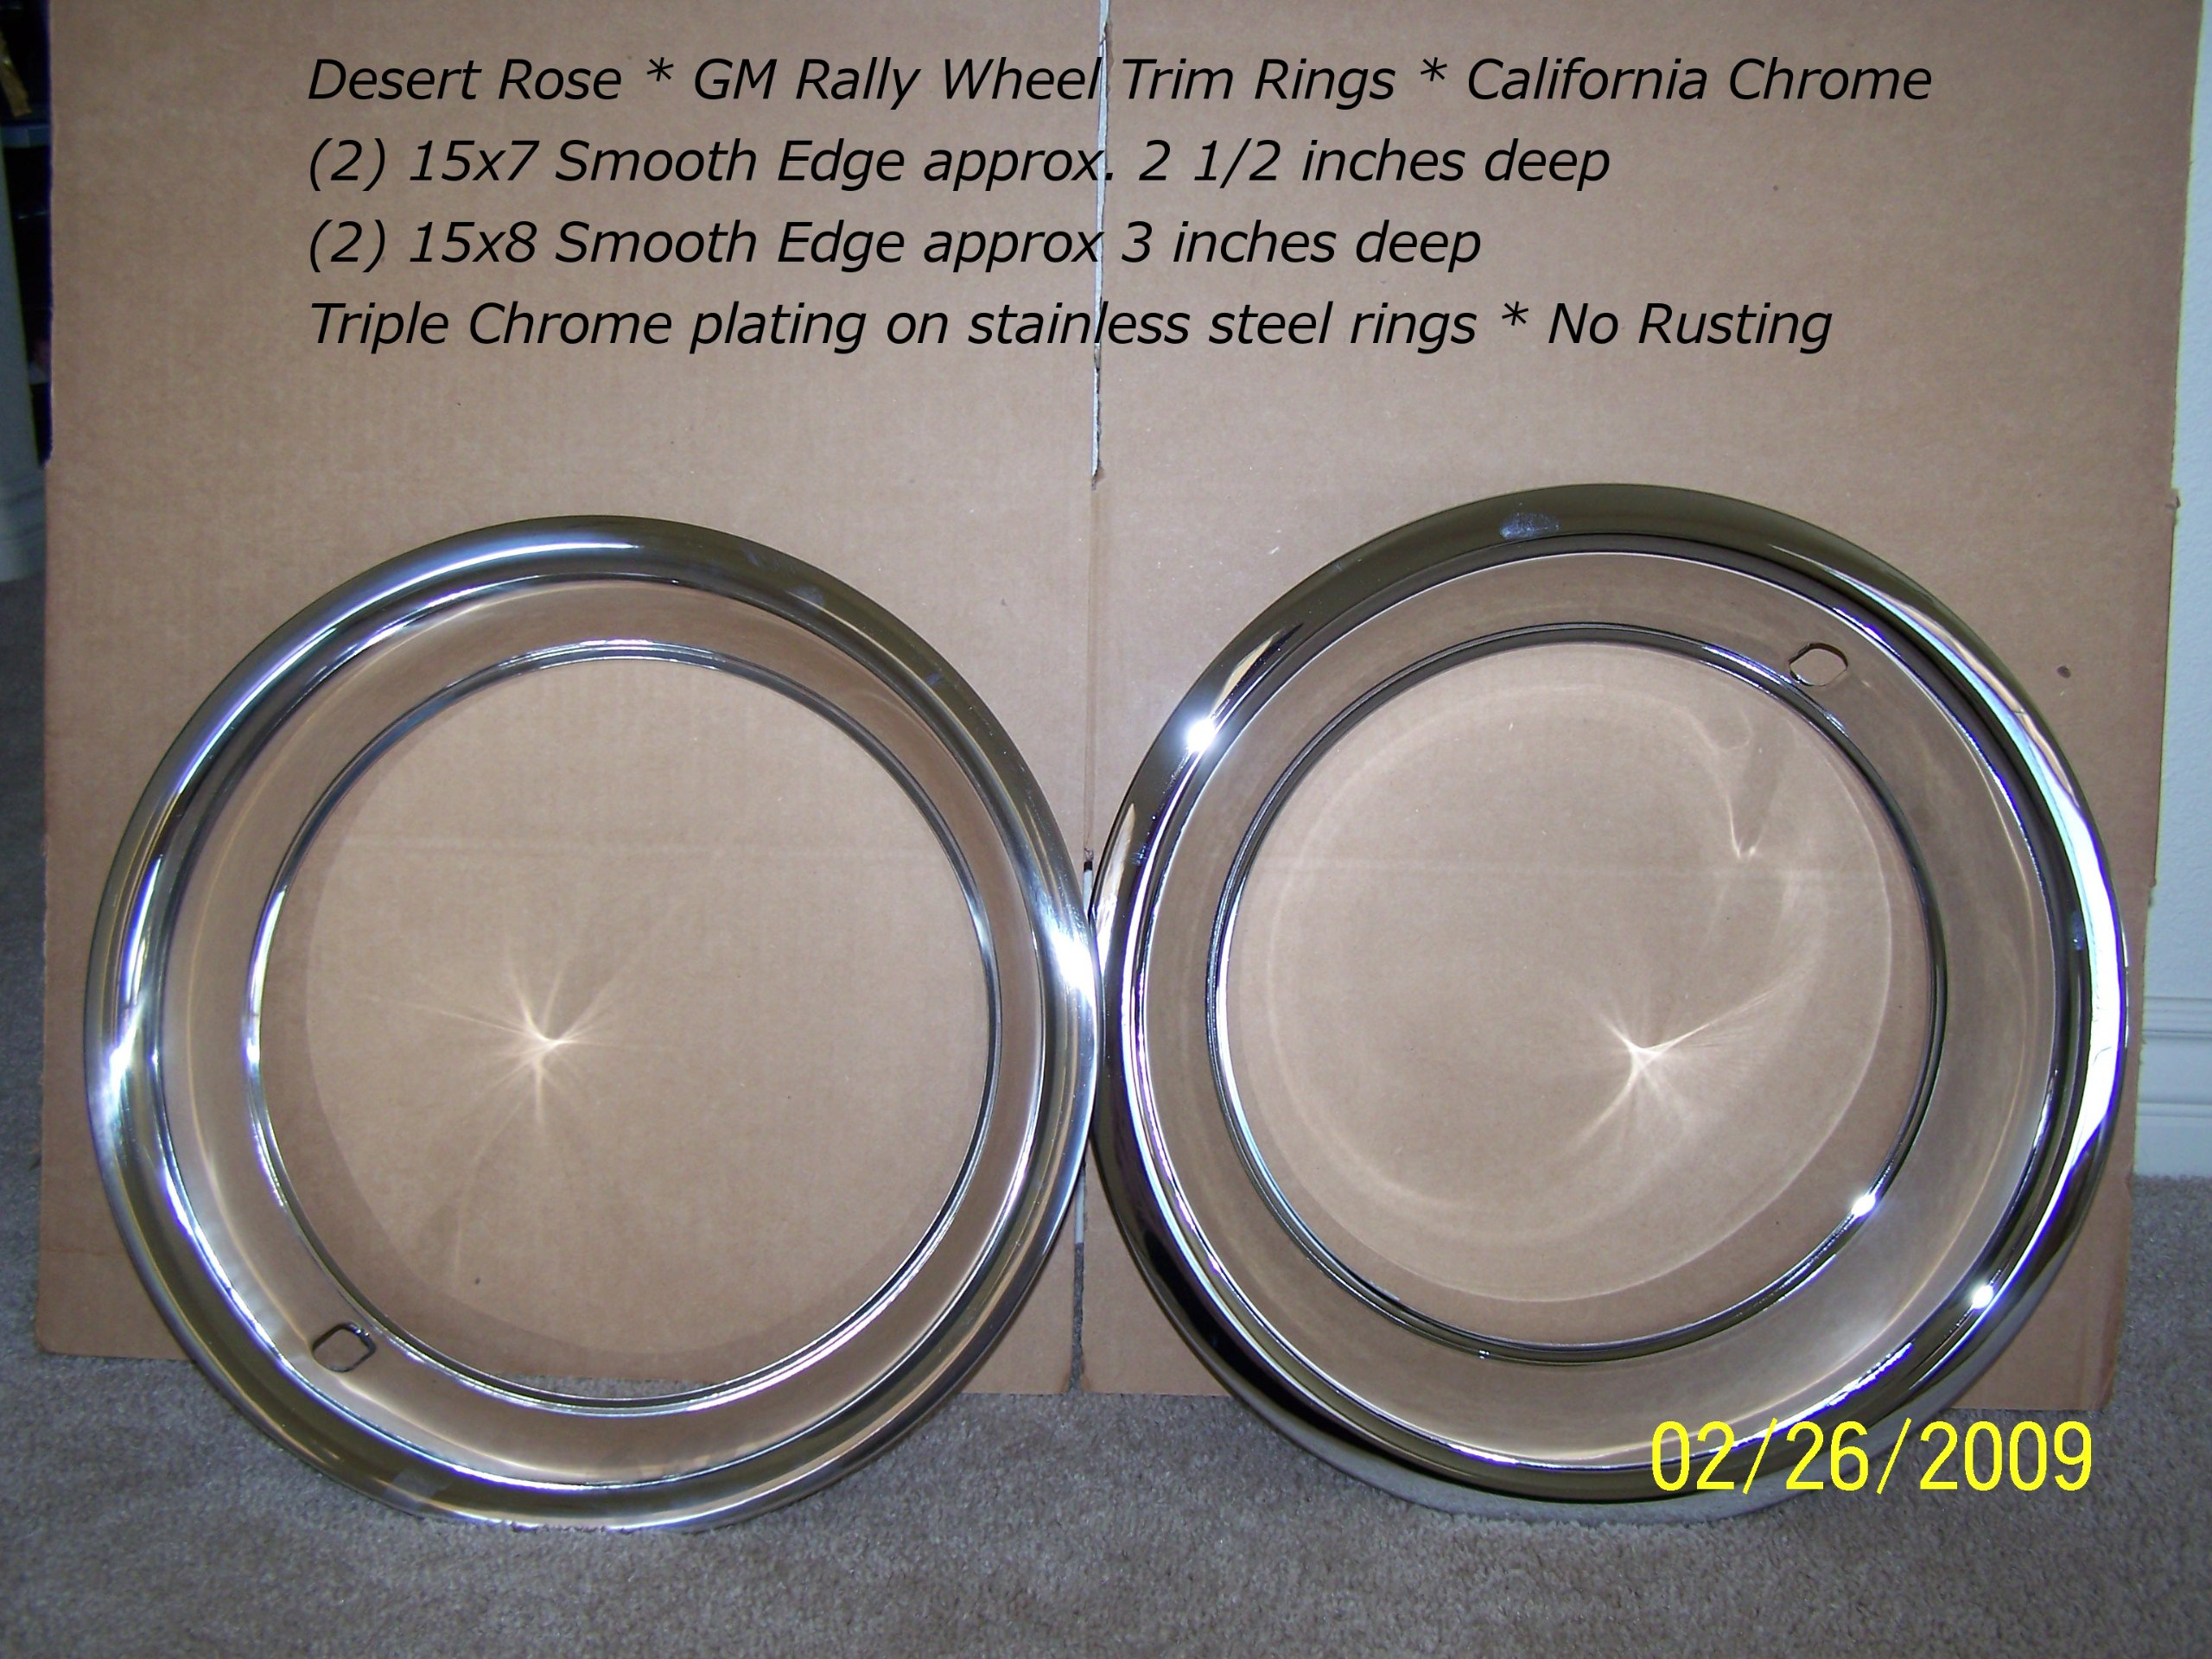 15x8 Pair and 15x7 Pair Chrome Stainless Steel Trim Rings (15x7/15x8)